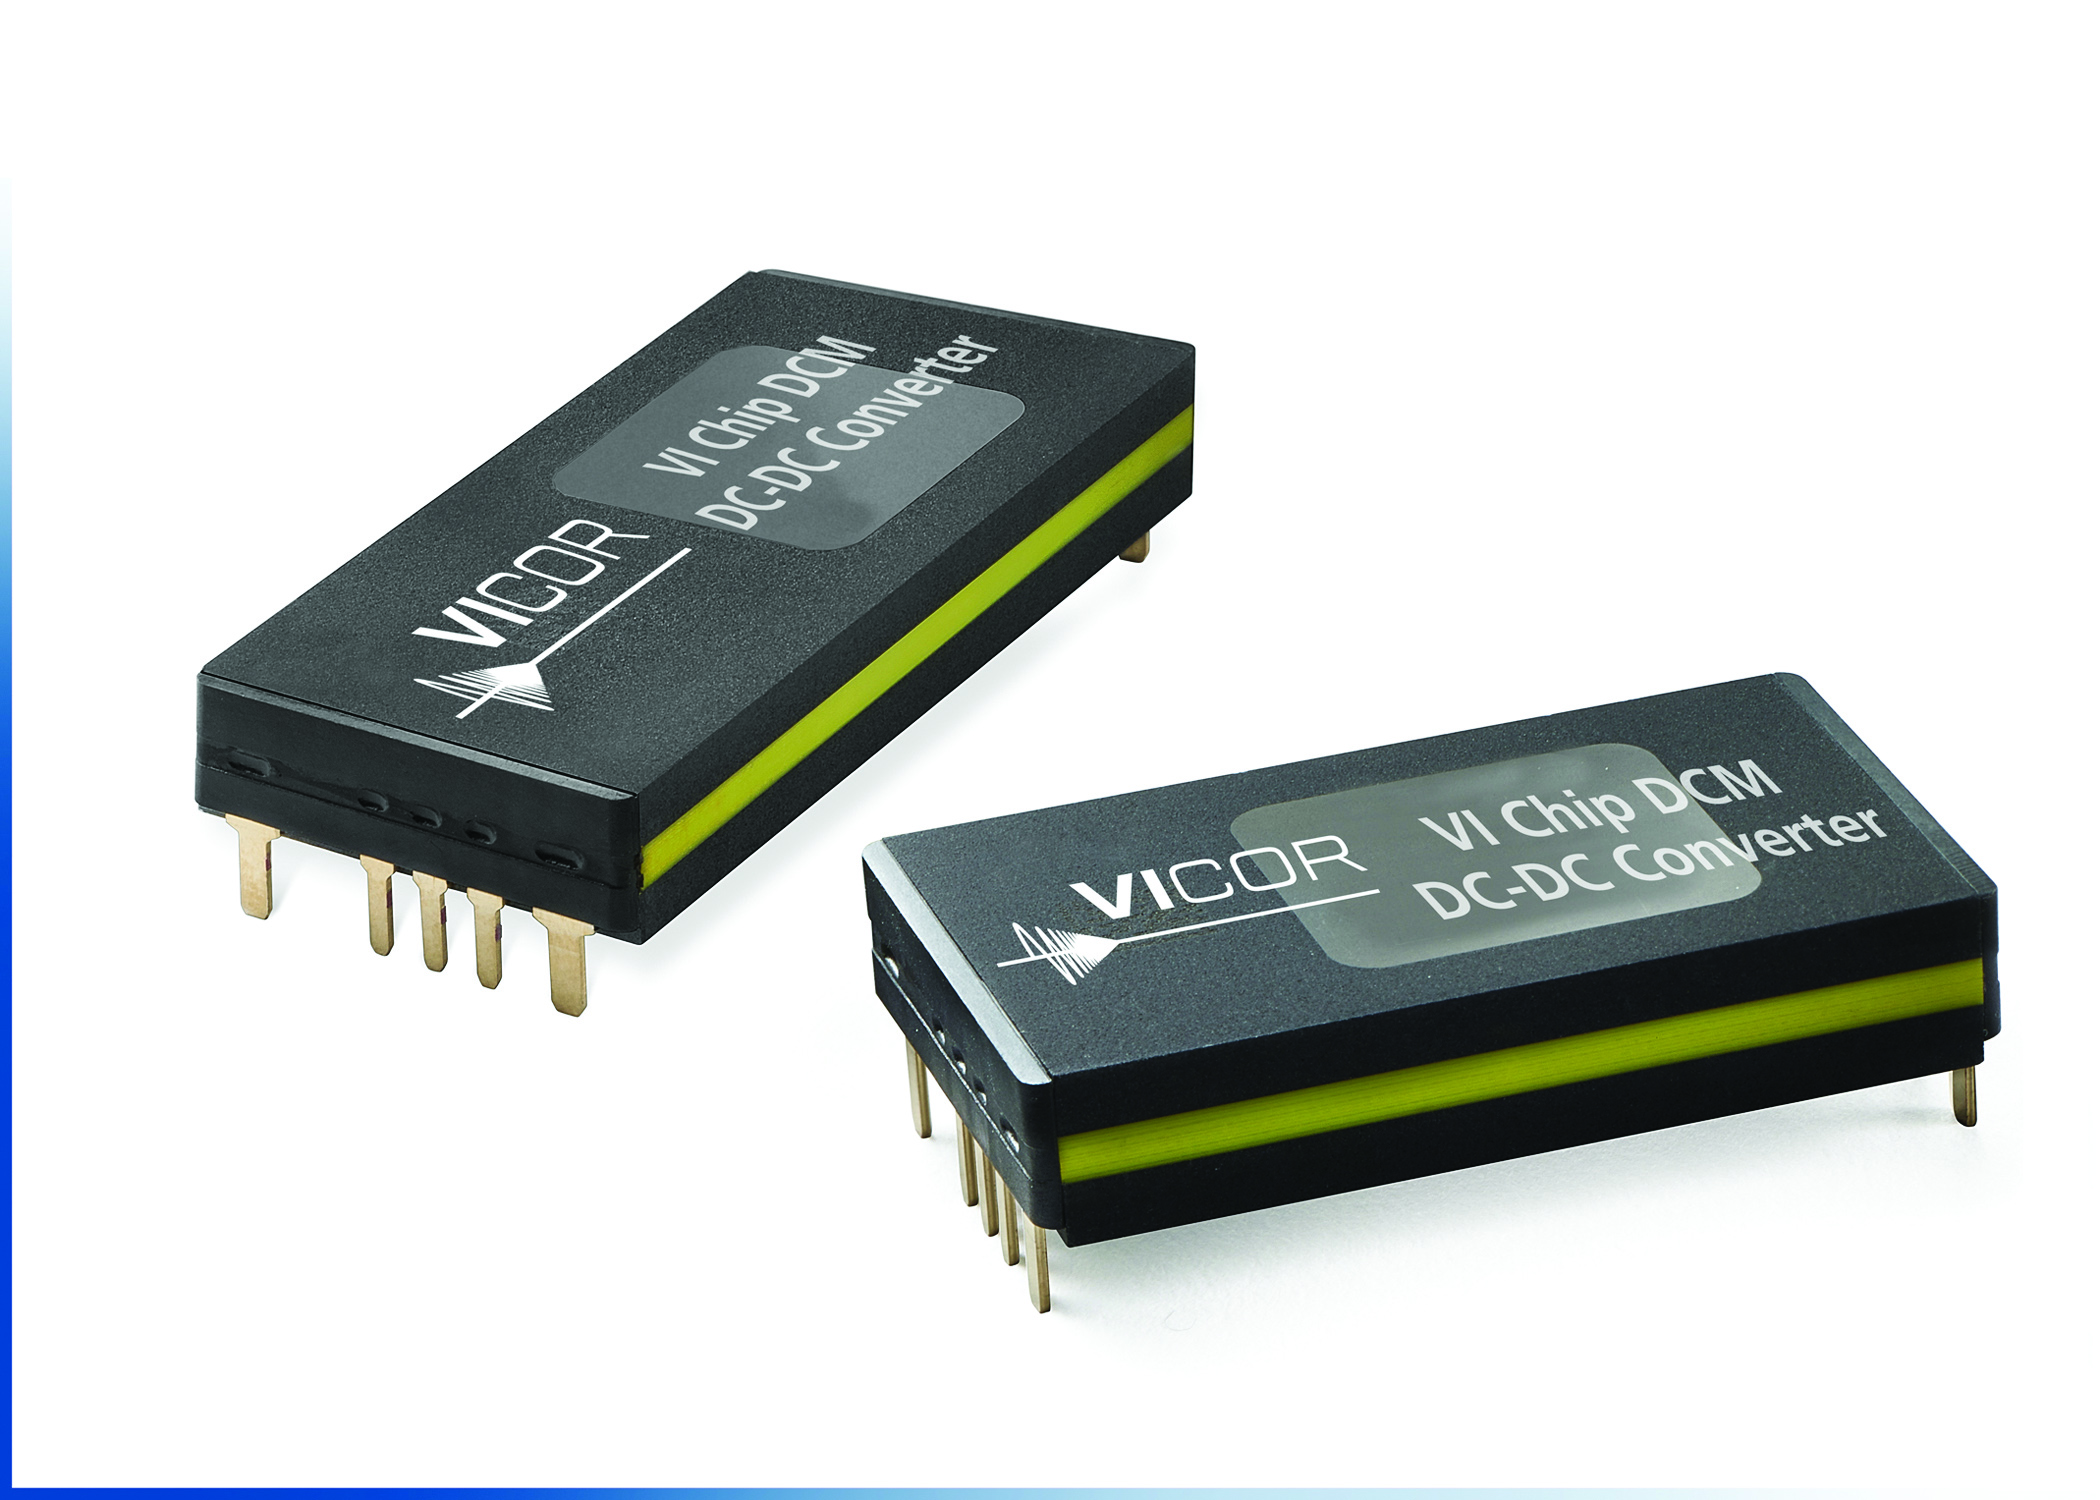 Vicor expands its DCM DC/DC converter series